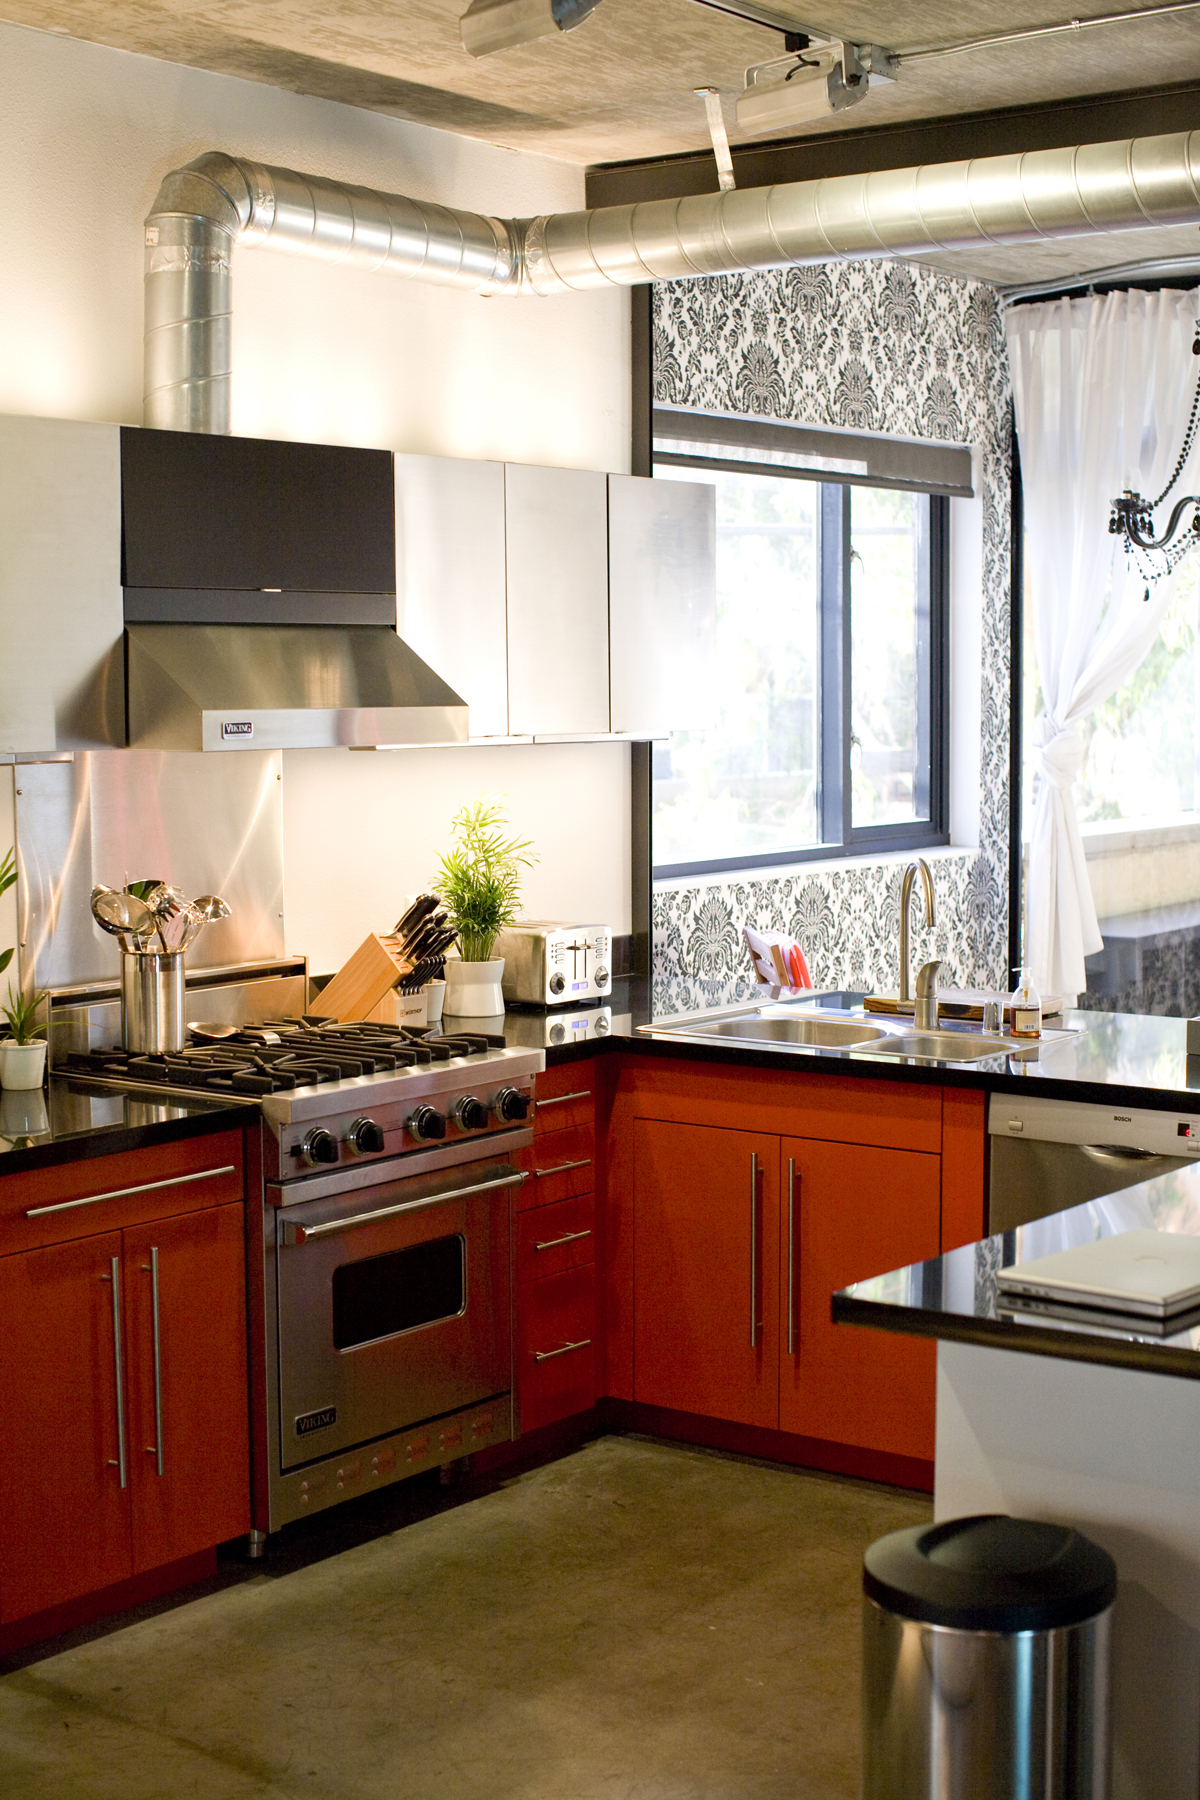 Our 10 Favorite Small Kitchens | Apartment Therapy